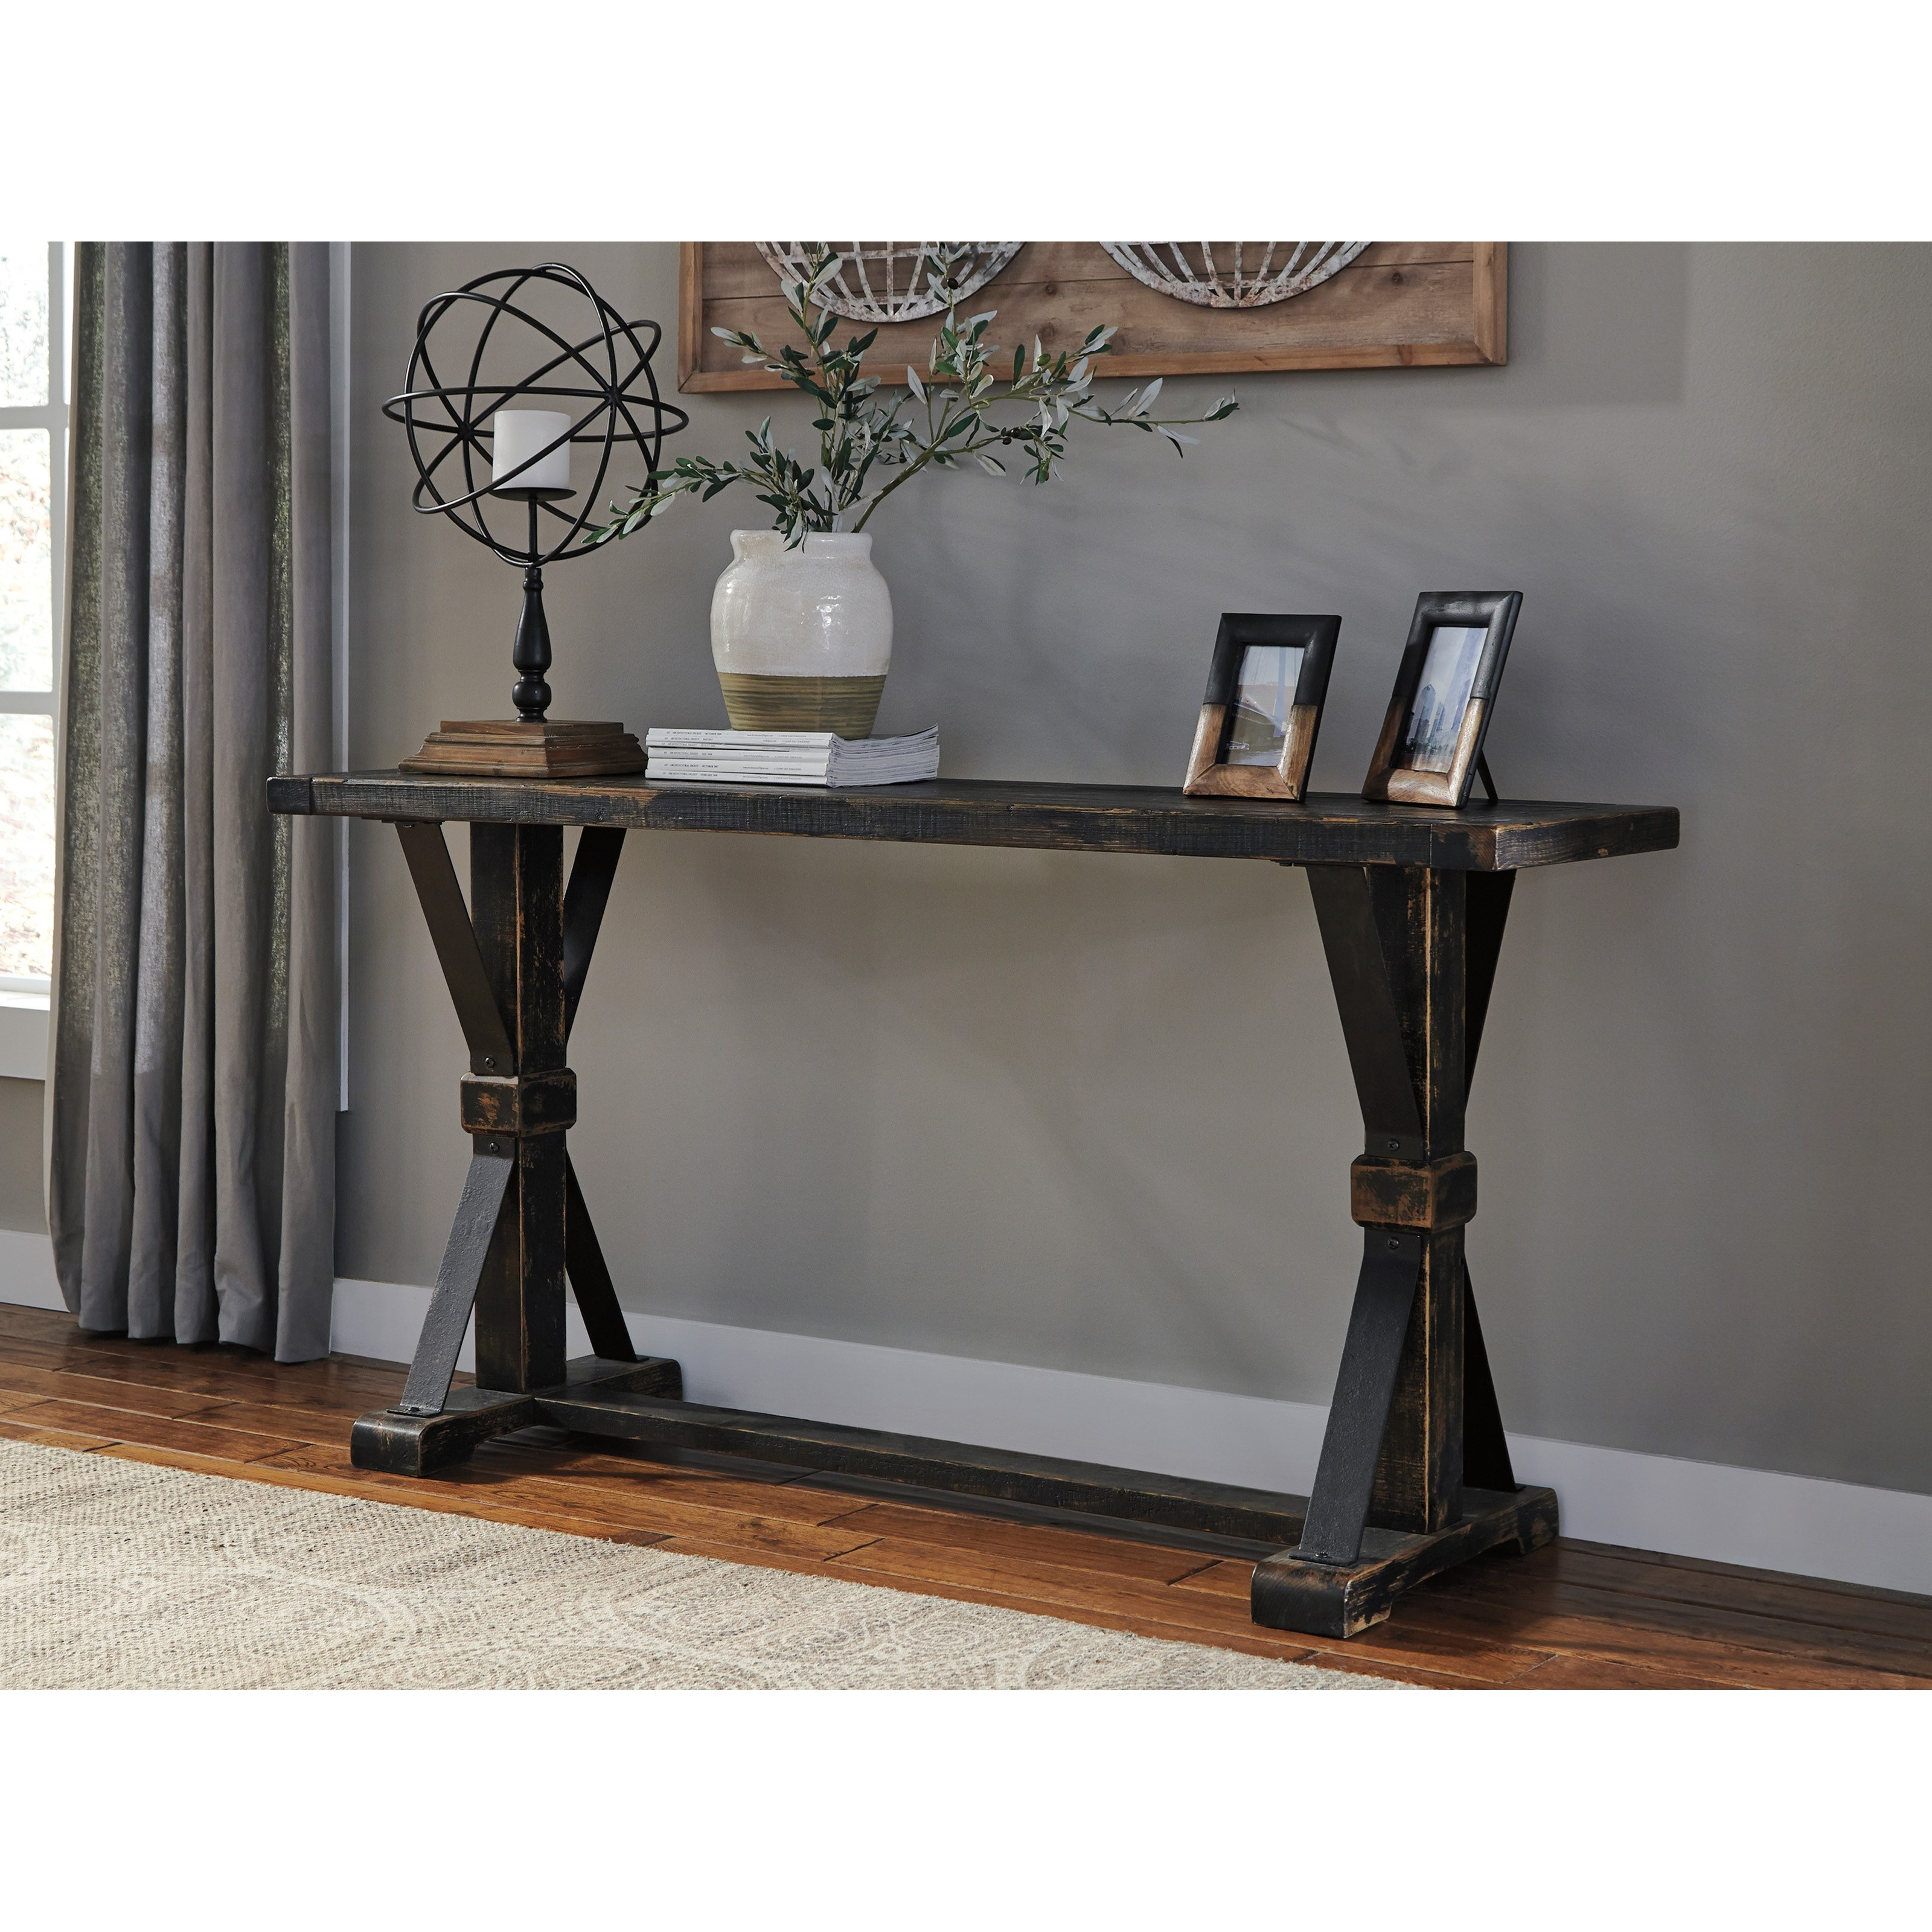 Rustic Farmhouse Style Sofa Table